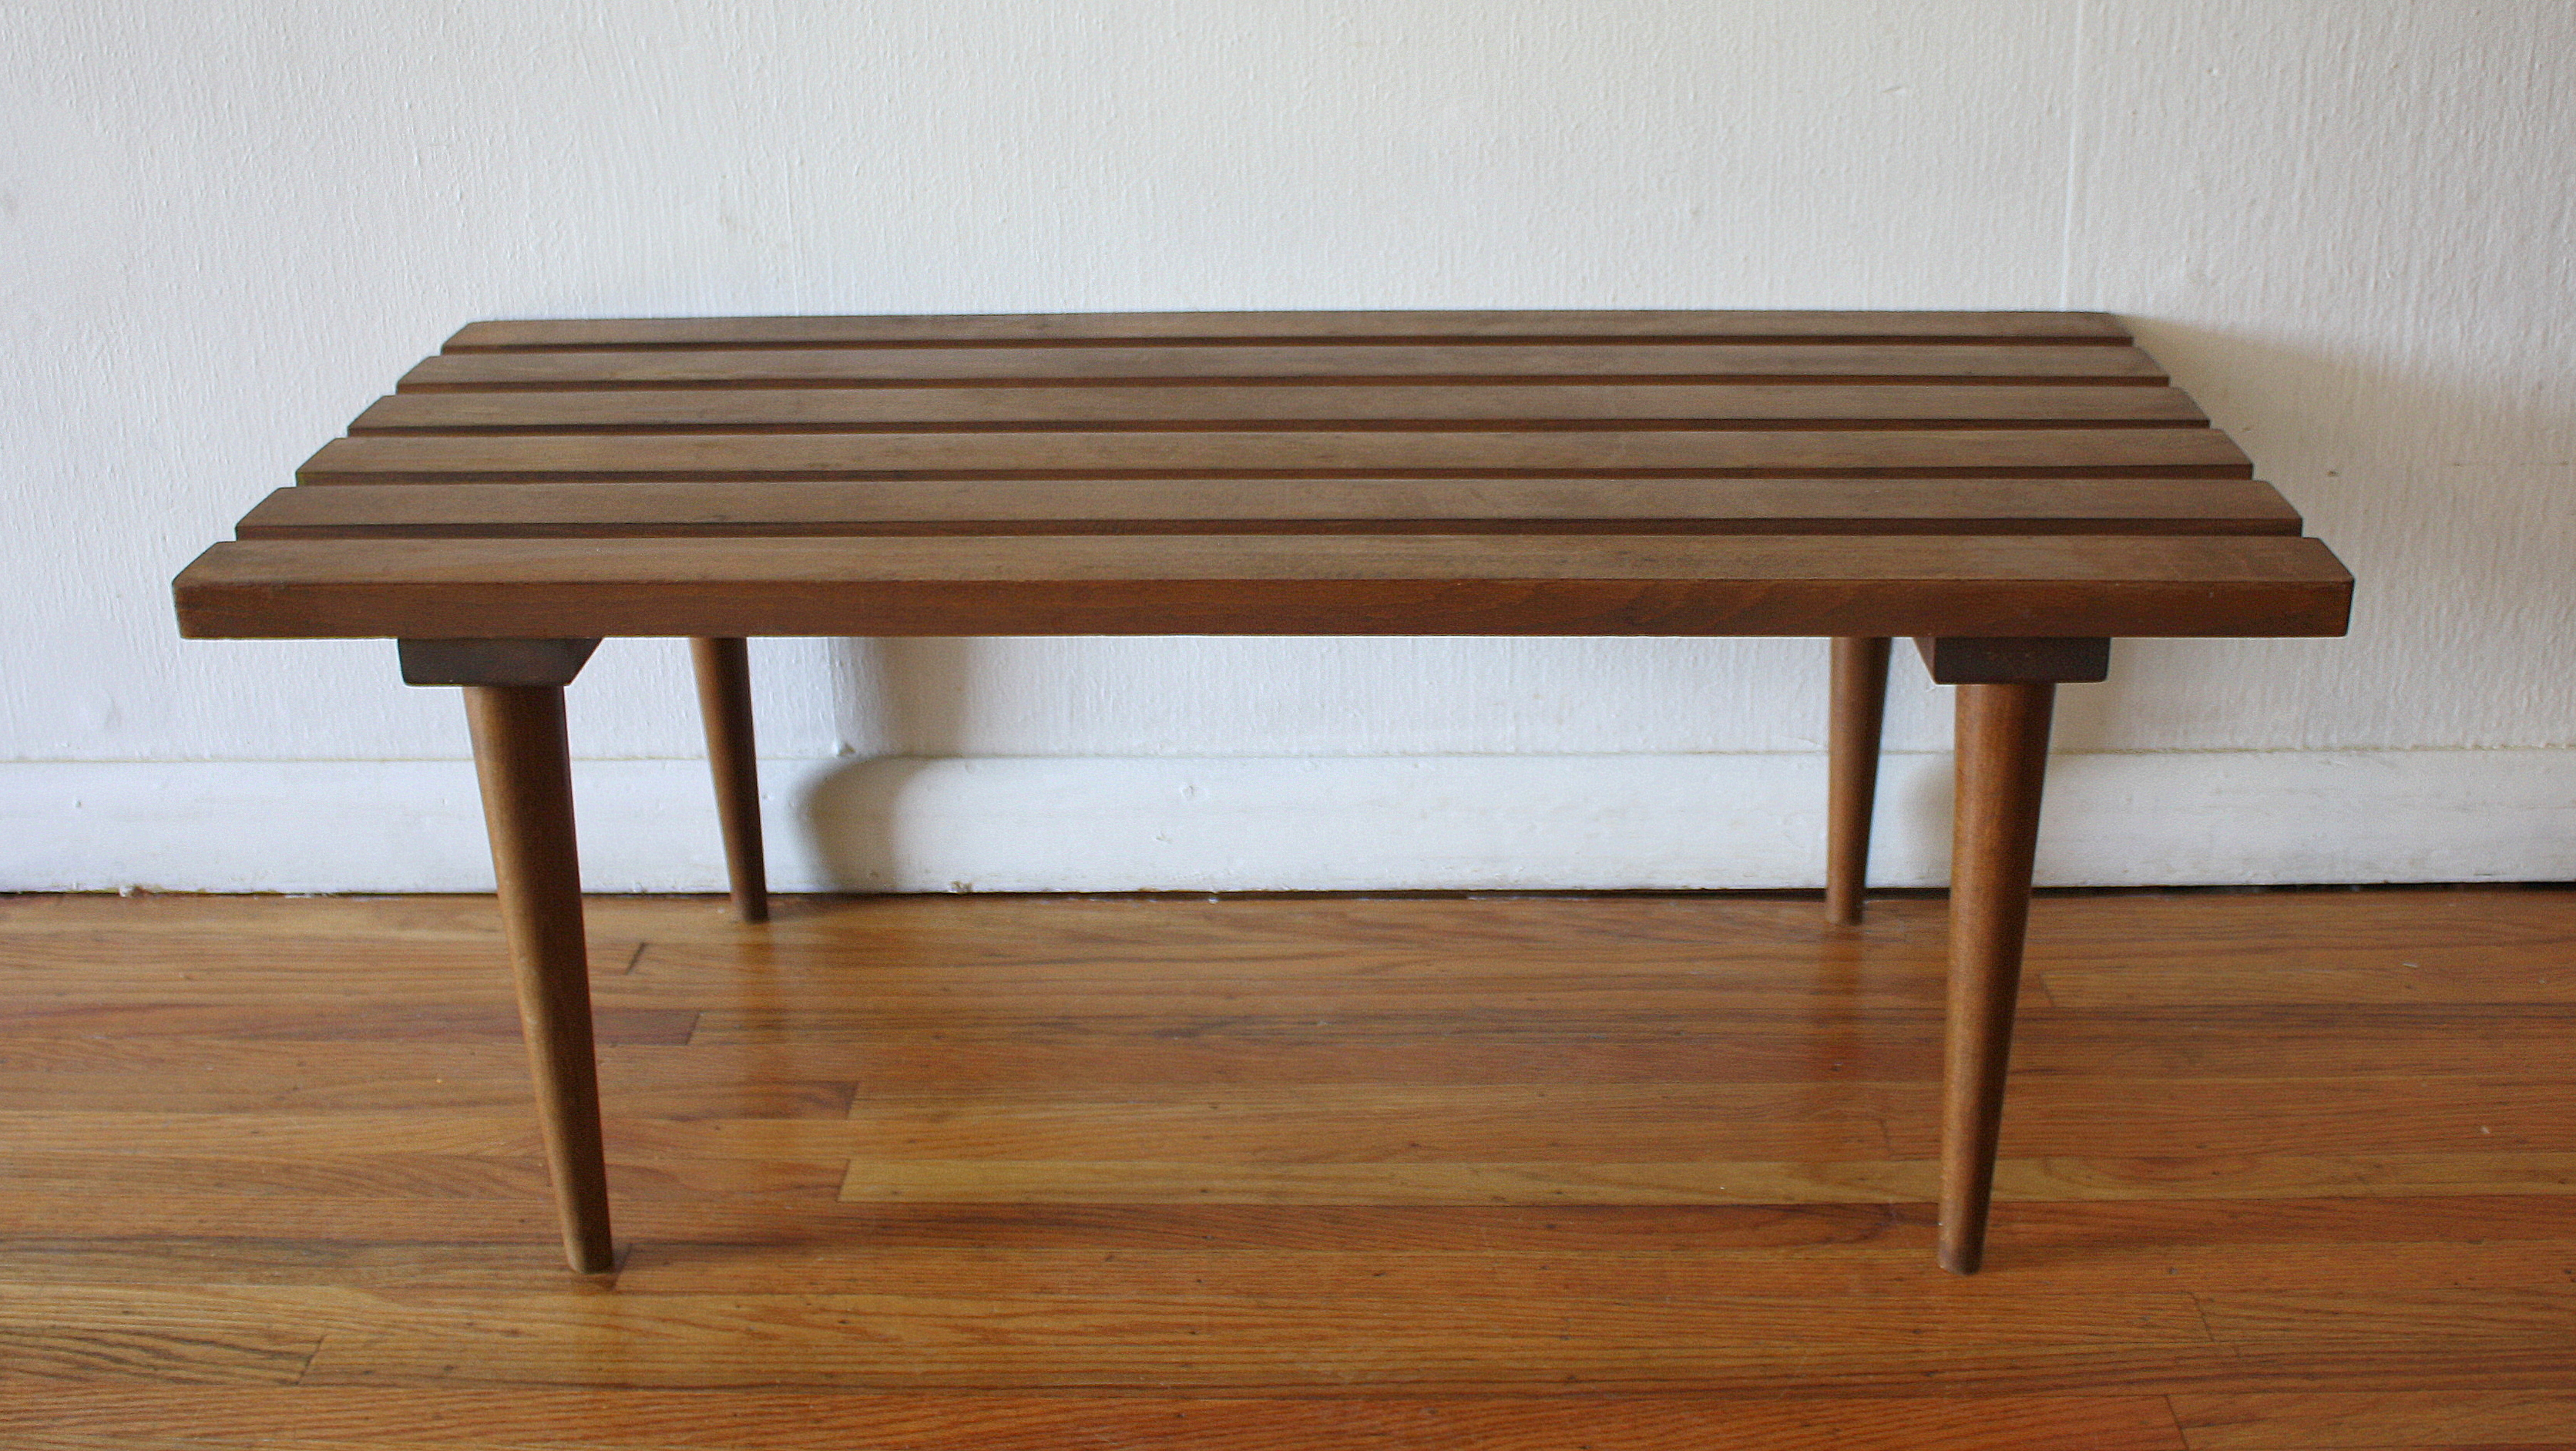 Pleasant Mid Century Modern Slatted Bench Coffee Tables Picked Vintage Unemploymentrelief Wooden Chair Designs For Living Room Unemploymentrelieforg